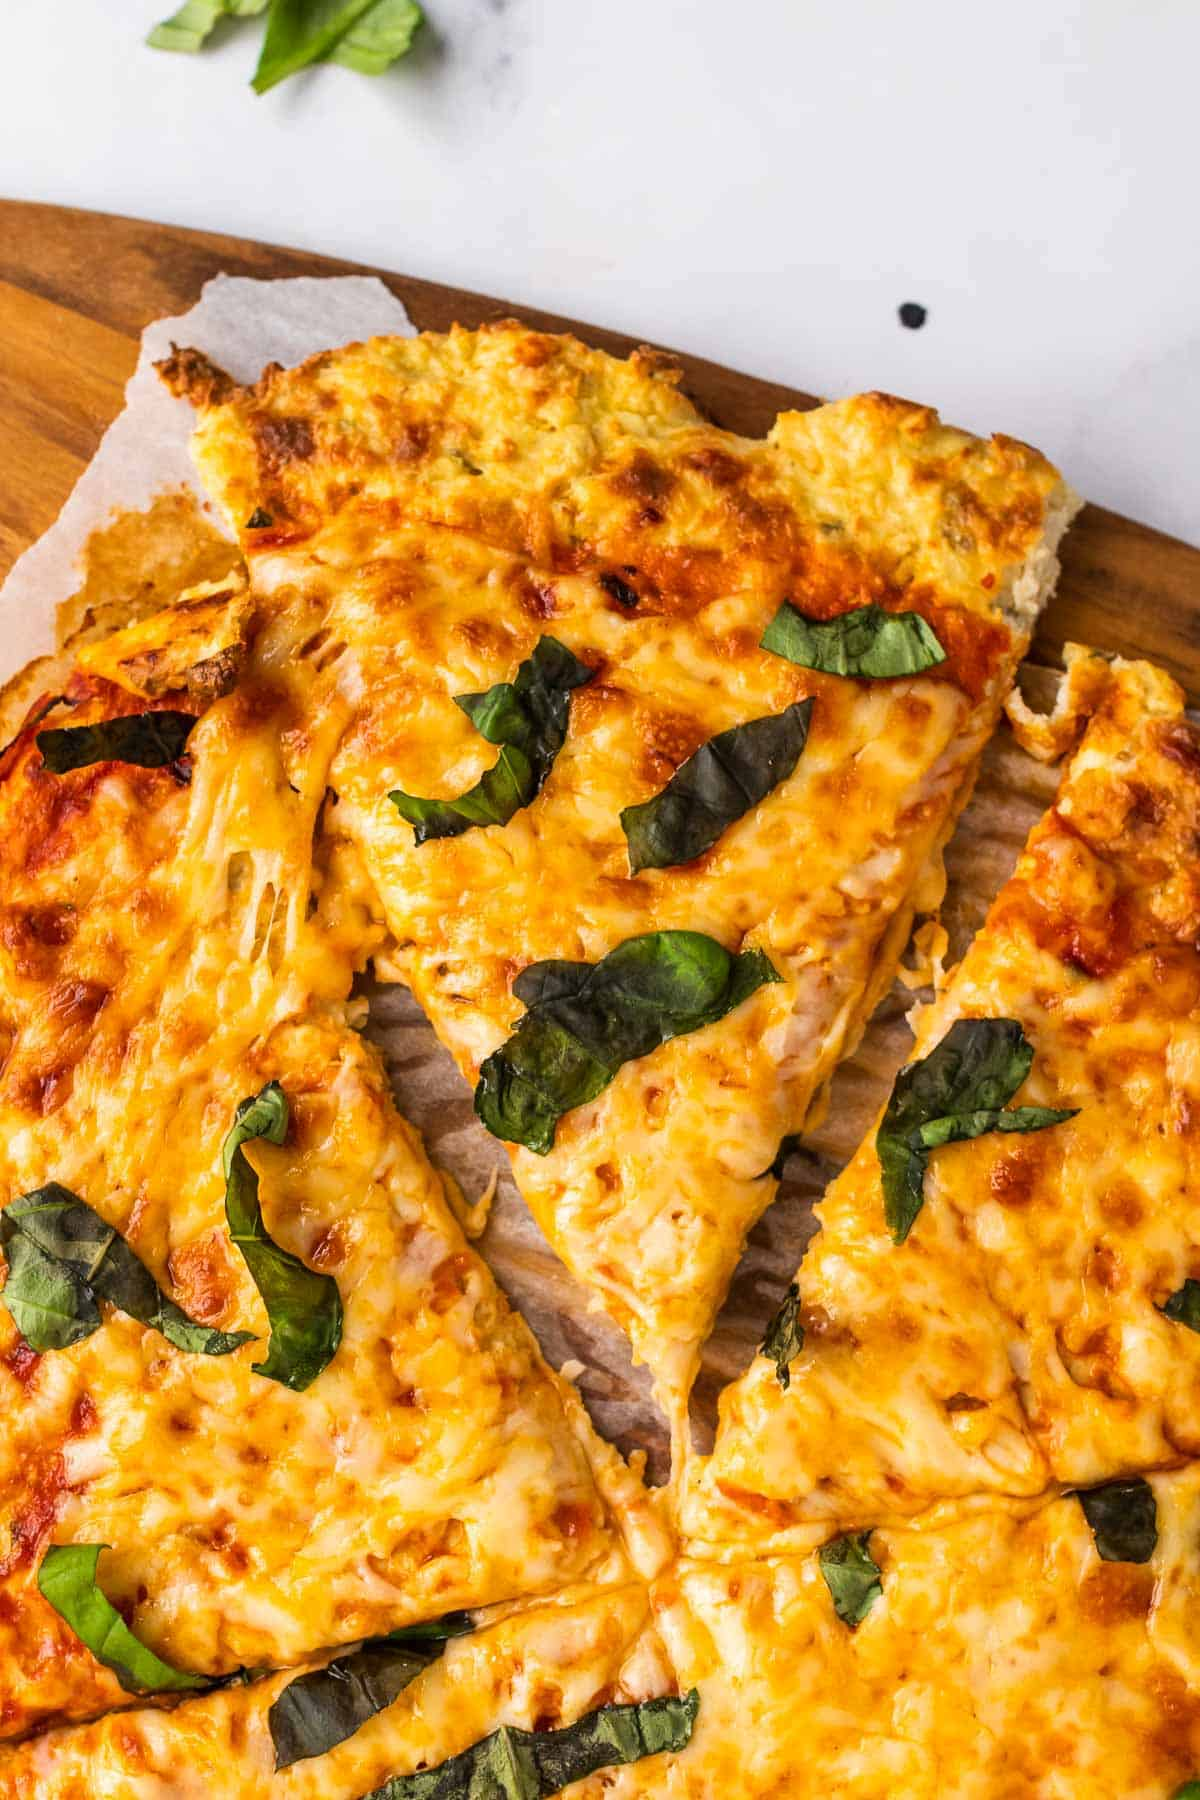 Closeup of pizza on a wooden cutting board with one slice cut out